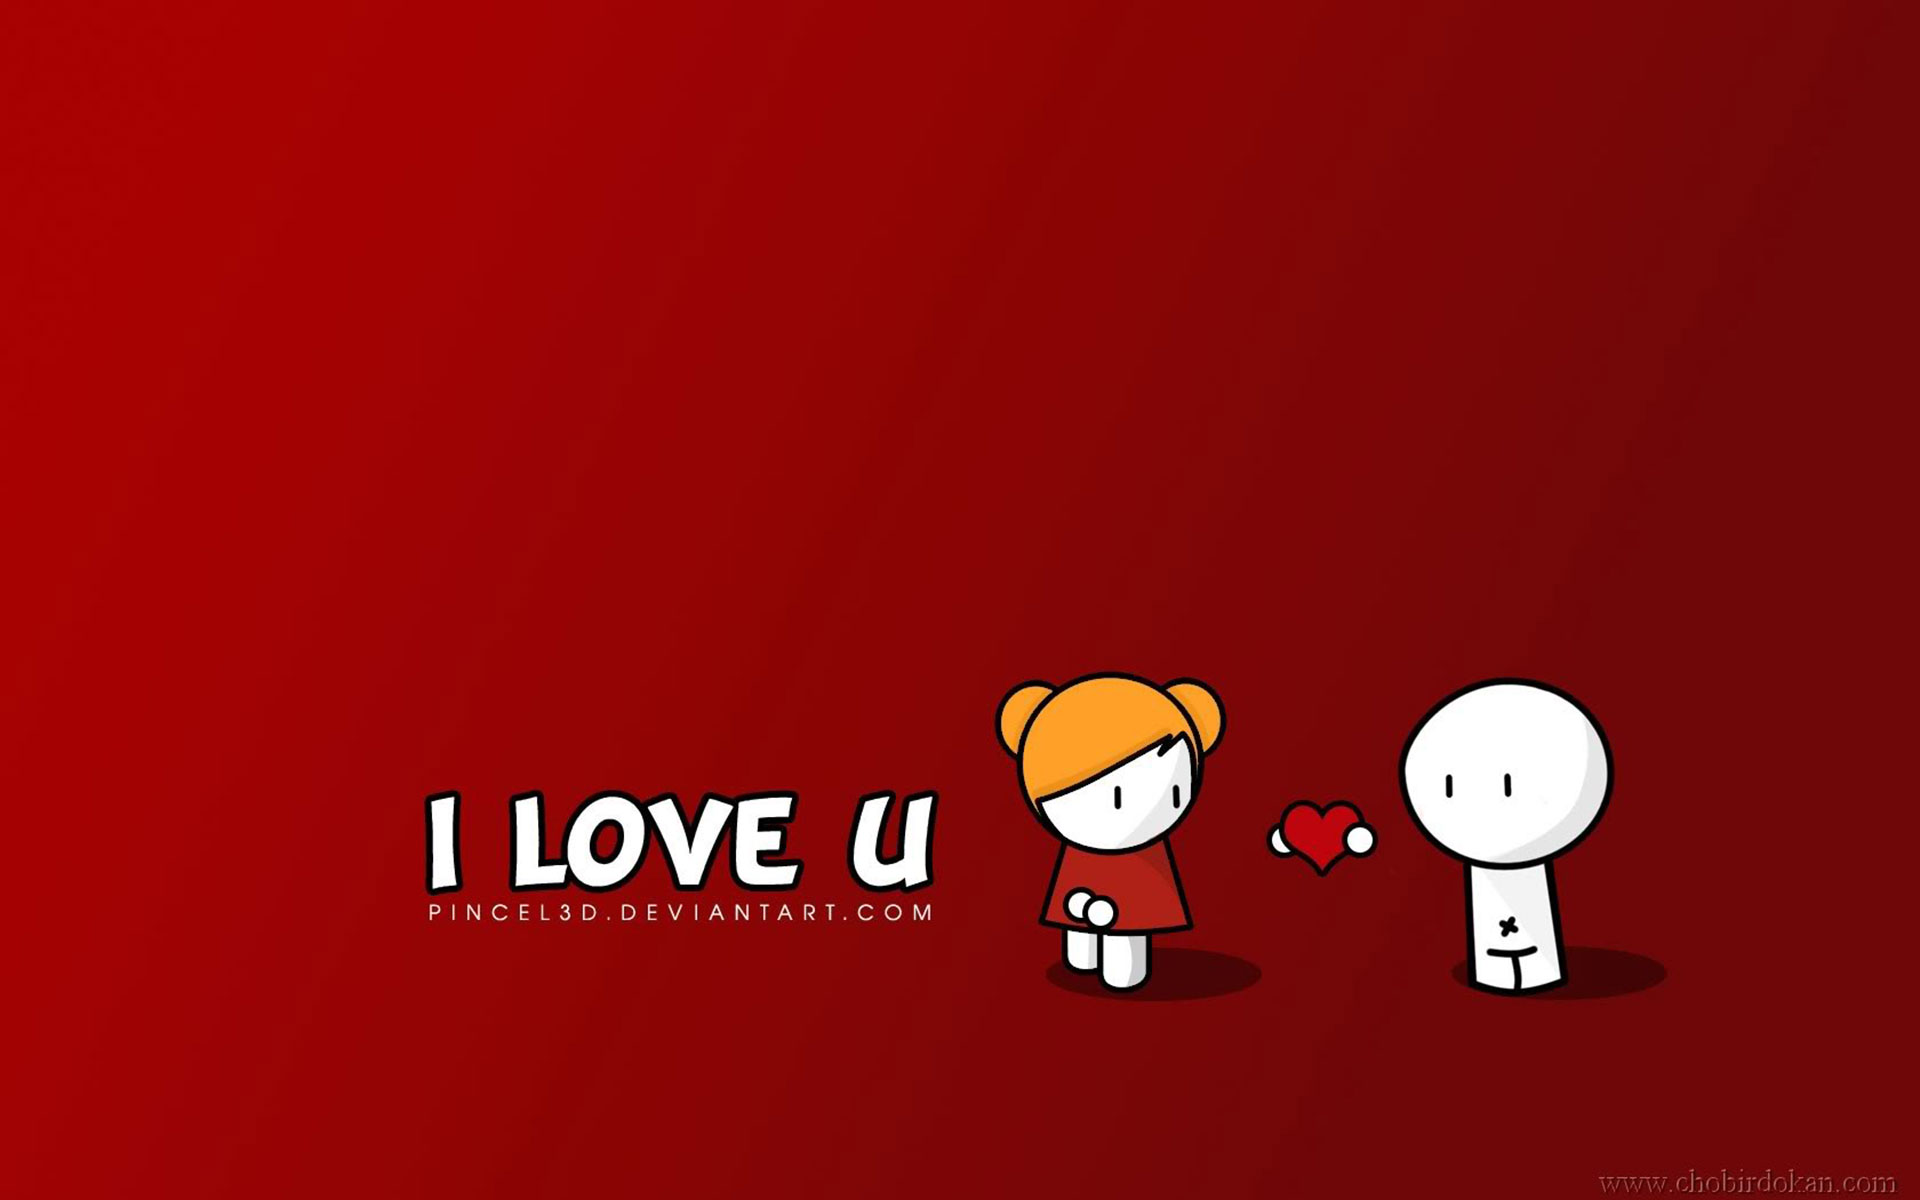 Funny Love Wallpaper For Fb : 25+ Free HD I Love You Wallpapers cute I Love You Images